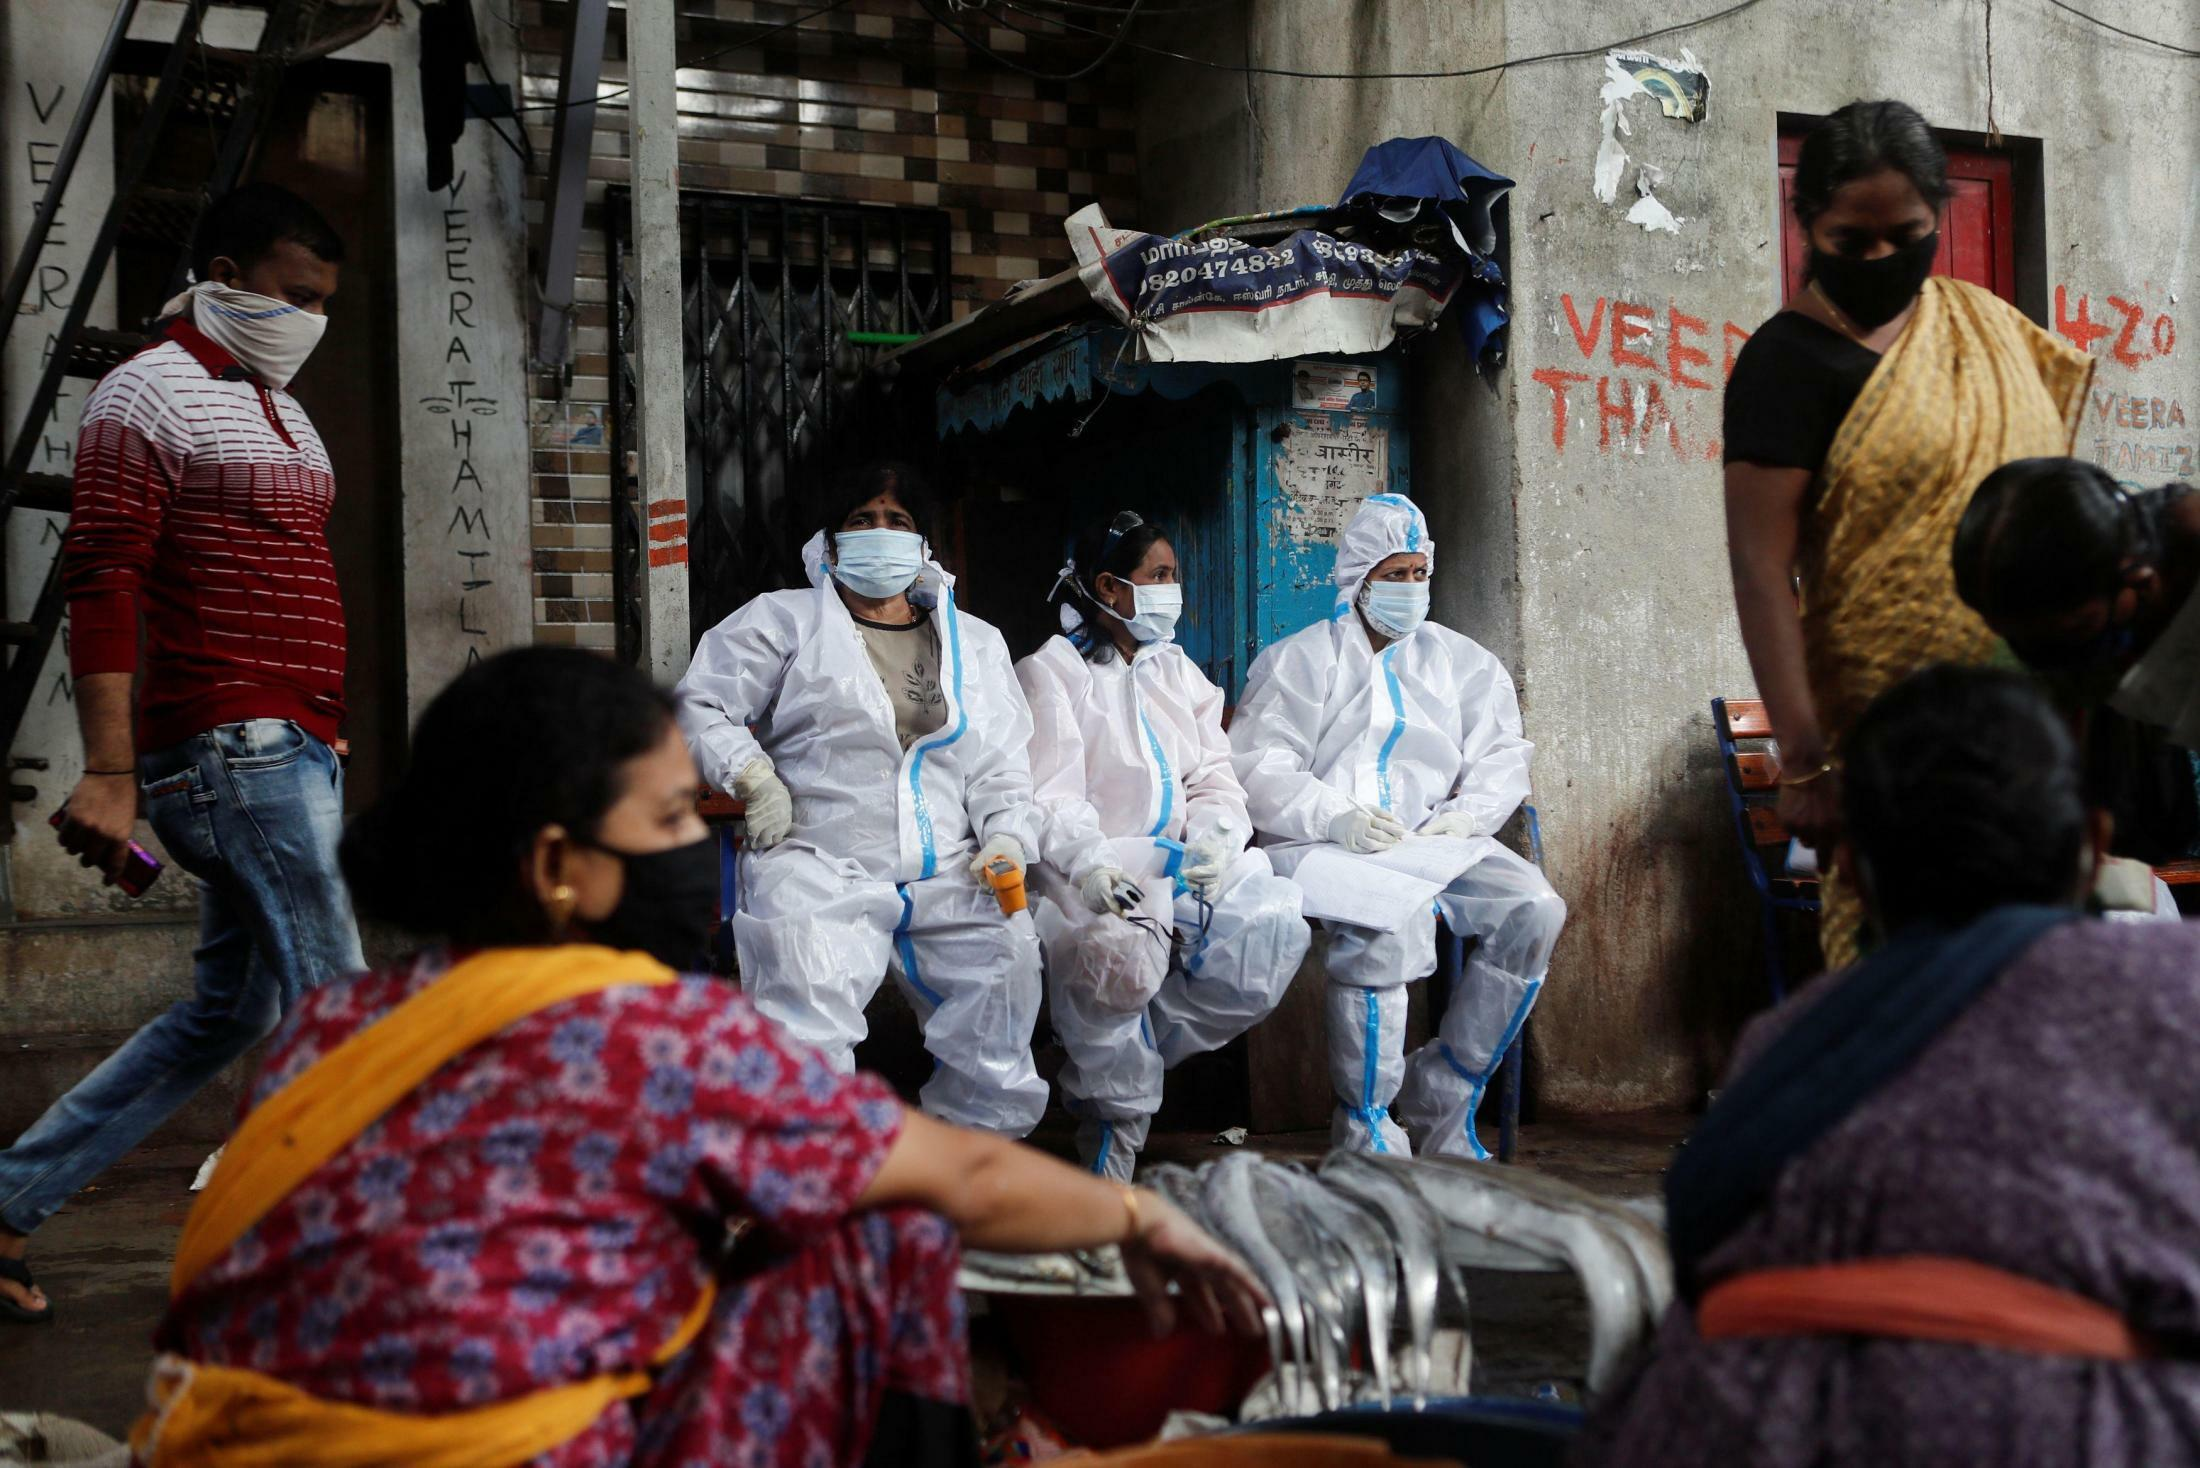 Health workers in personal protective equipment rest during a check up campaign for the coronavirus disease (COVID-19) at a slum area in Mumbai, India, August 3, 2020. REUTERS/Francis MascarenhasREUTERS